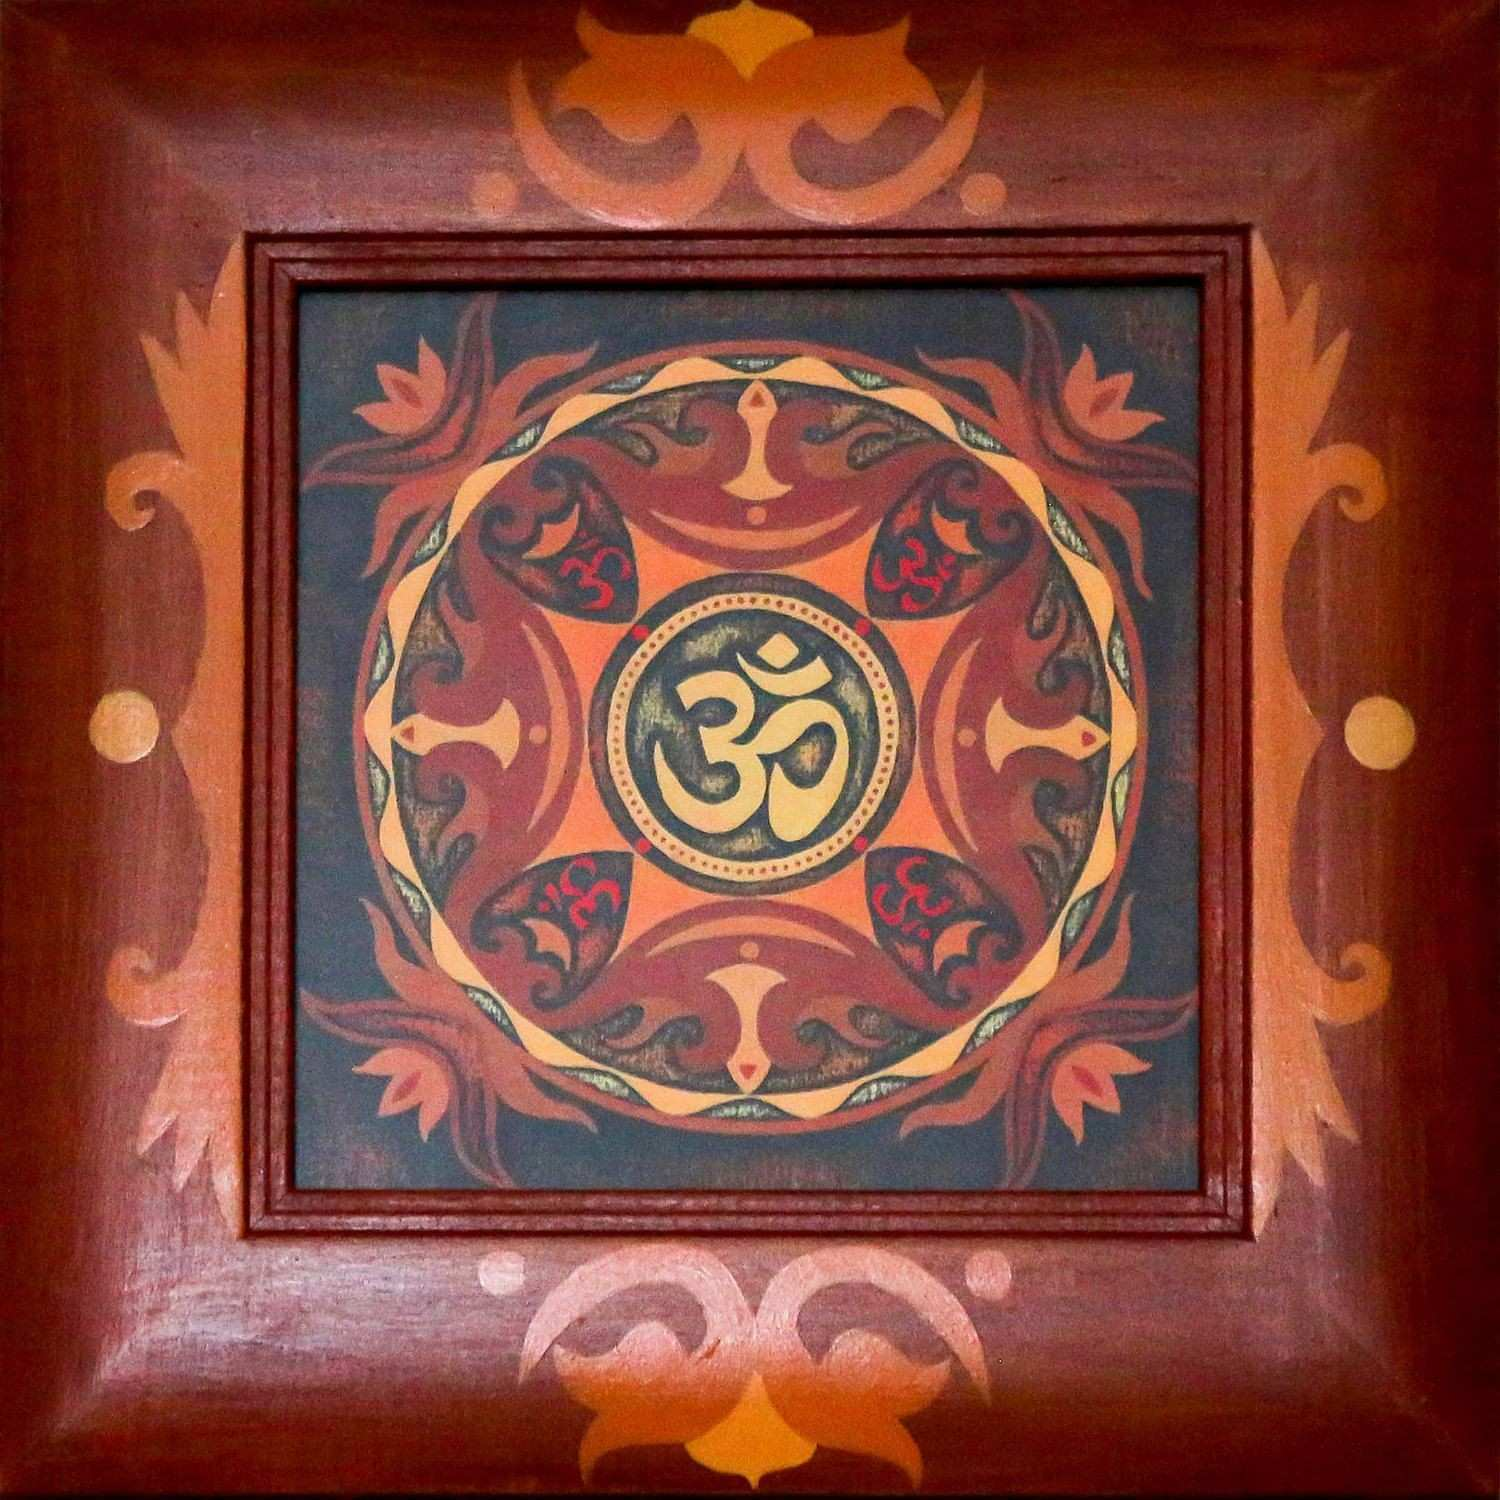 OM print mantra wooden frame glass mandala abstract original